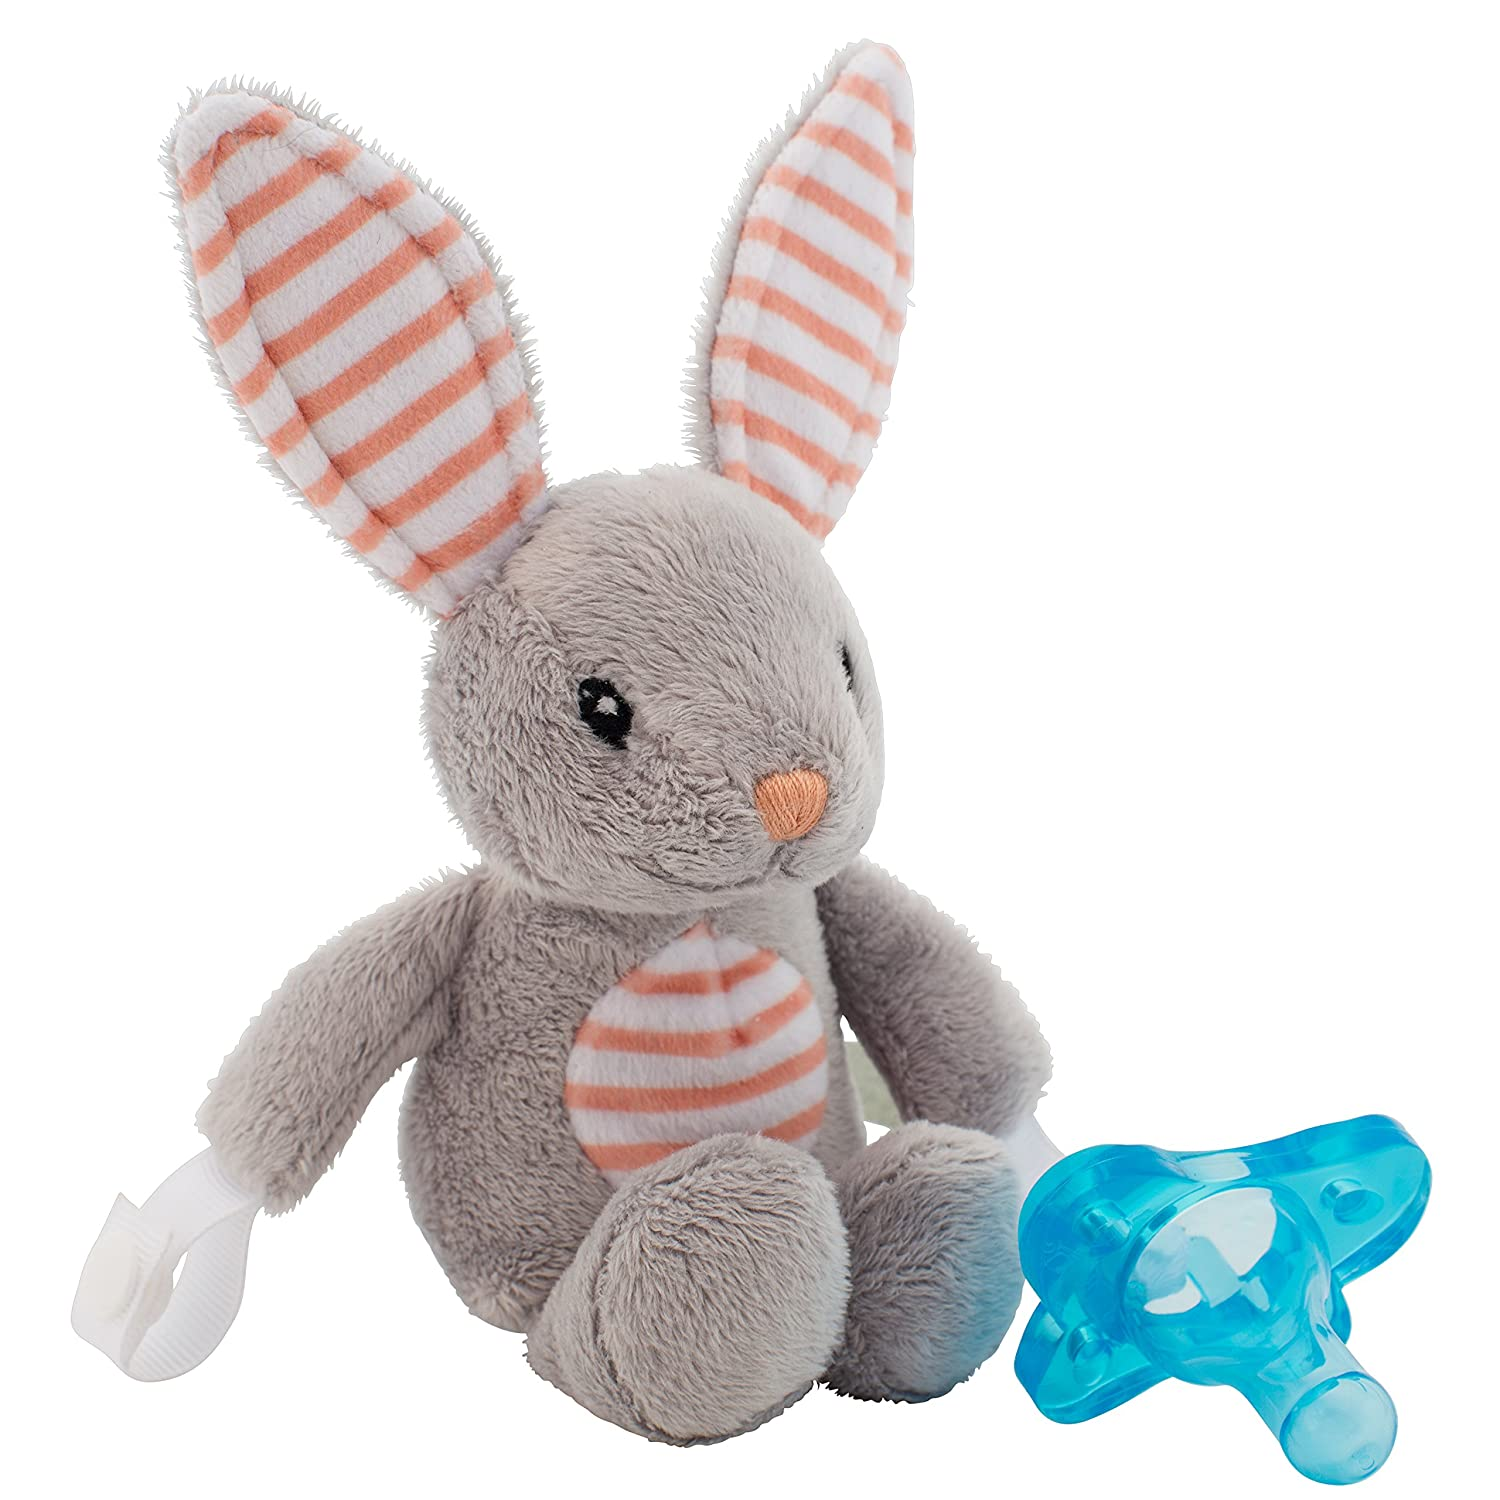 Amazon.com : Dr. Browns Lovey Pacifier and Teether Holder, 0 Months Plus, Bunny with Blue Pacifier : Baby